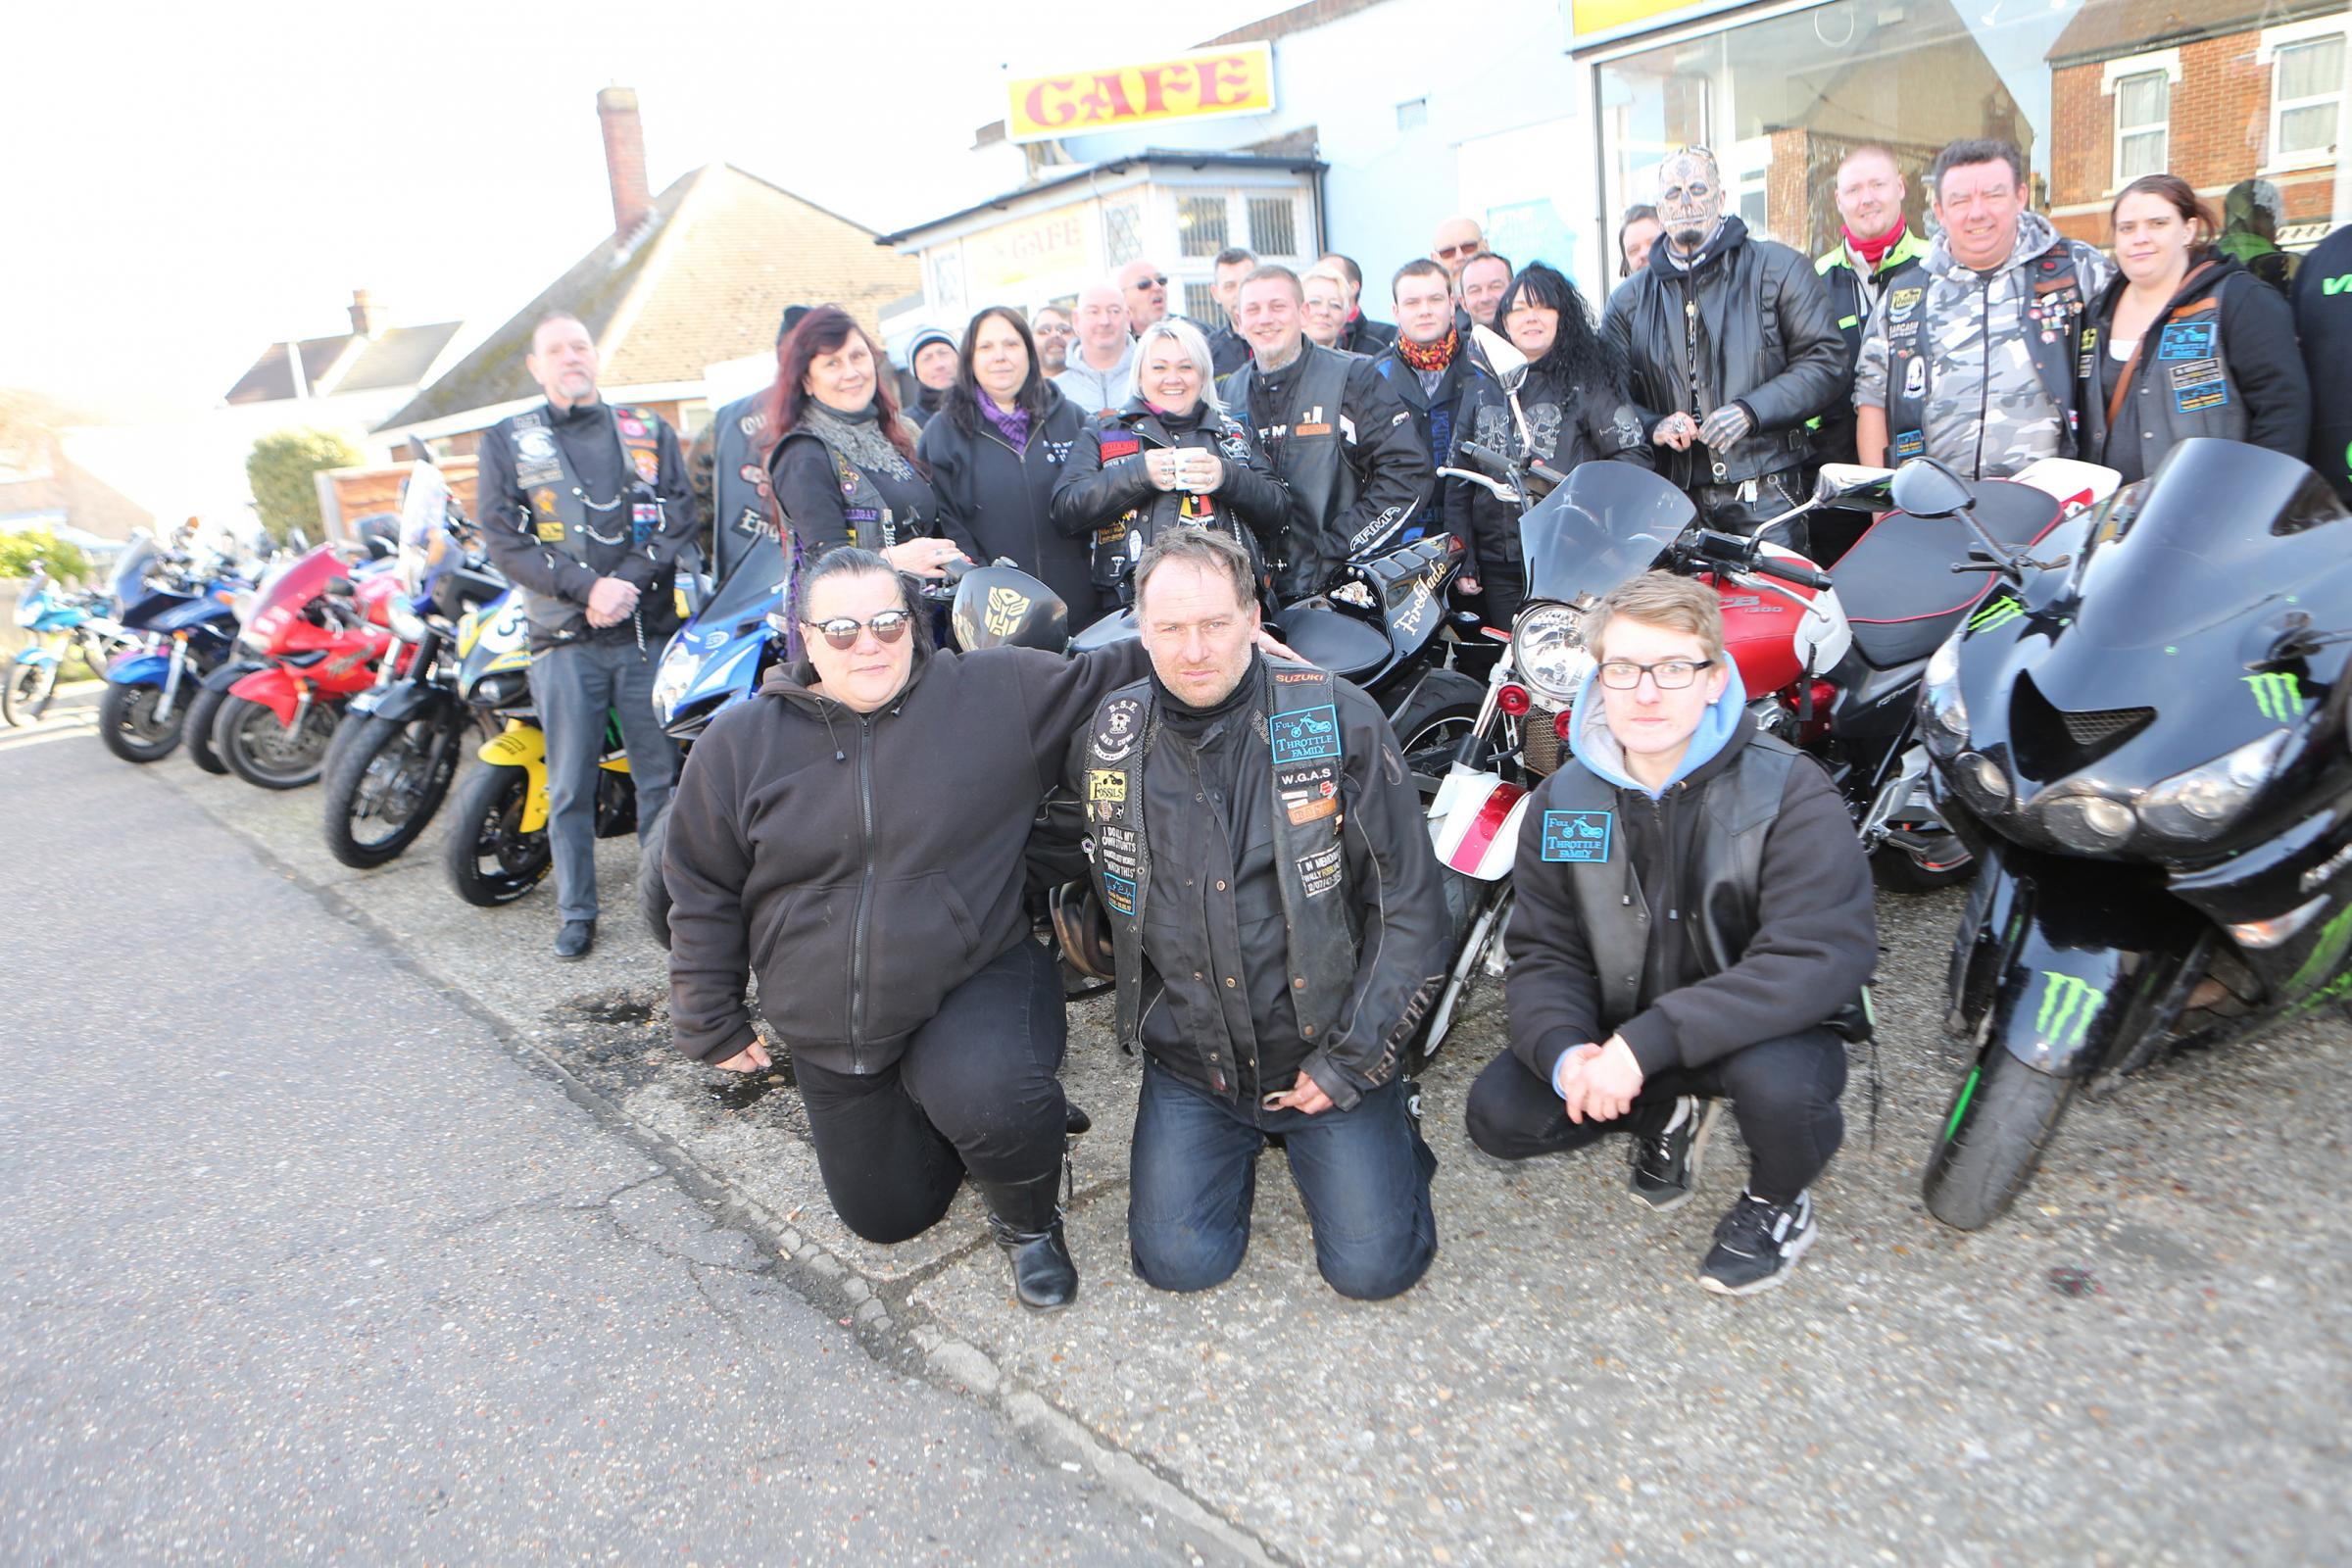 CHARITY RIDE: Bikers from the Full Throttle Cafe in Clacton are delivering Easter eggs to young hospital patients